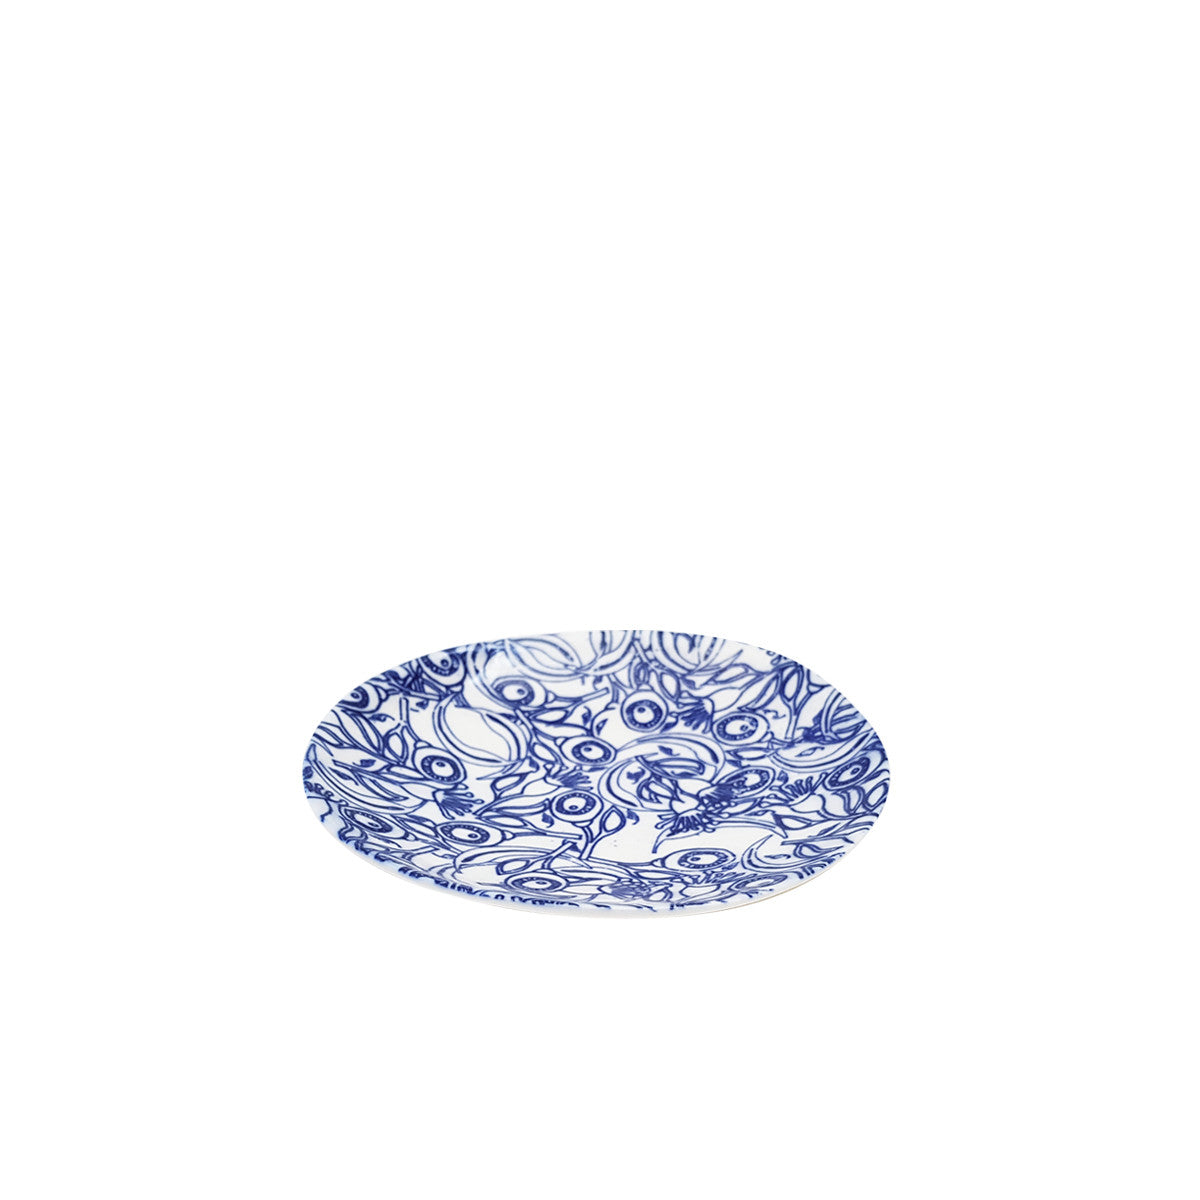 Floral Blue Small Round Plate 12cm